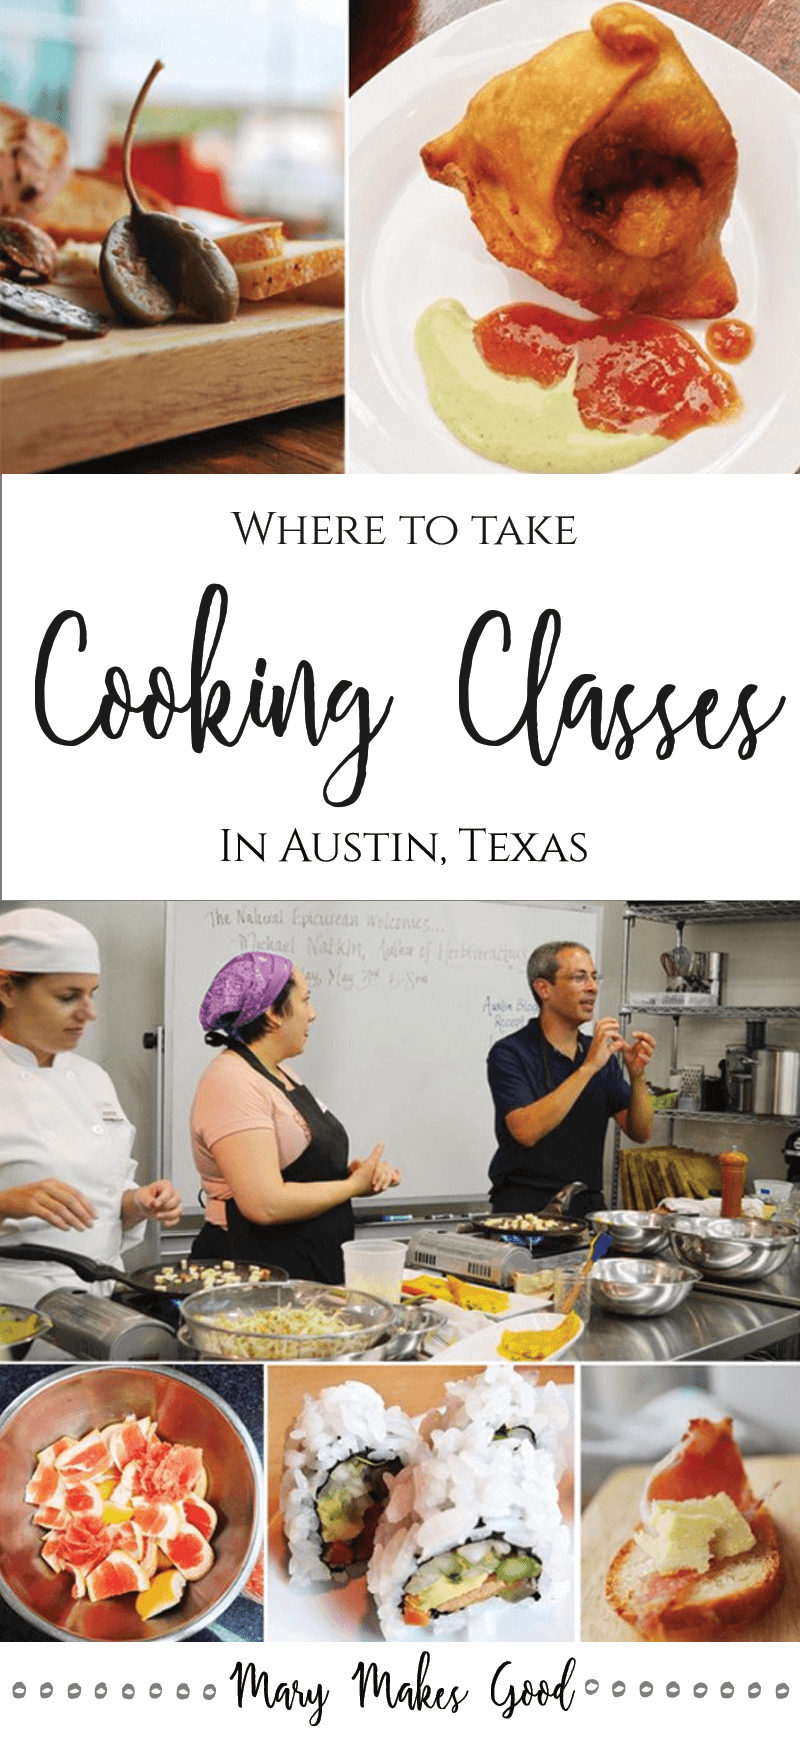 Where to Take Cooking Classes in Austin Texas